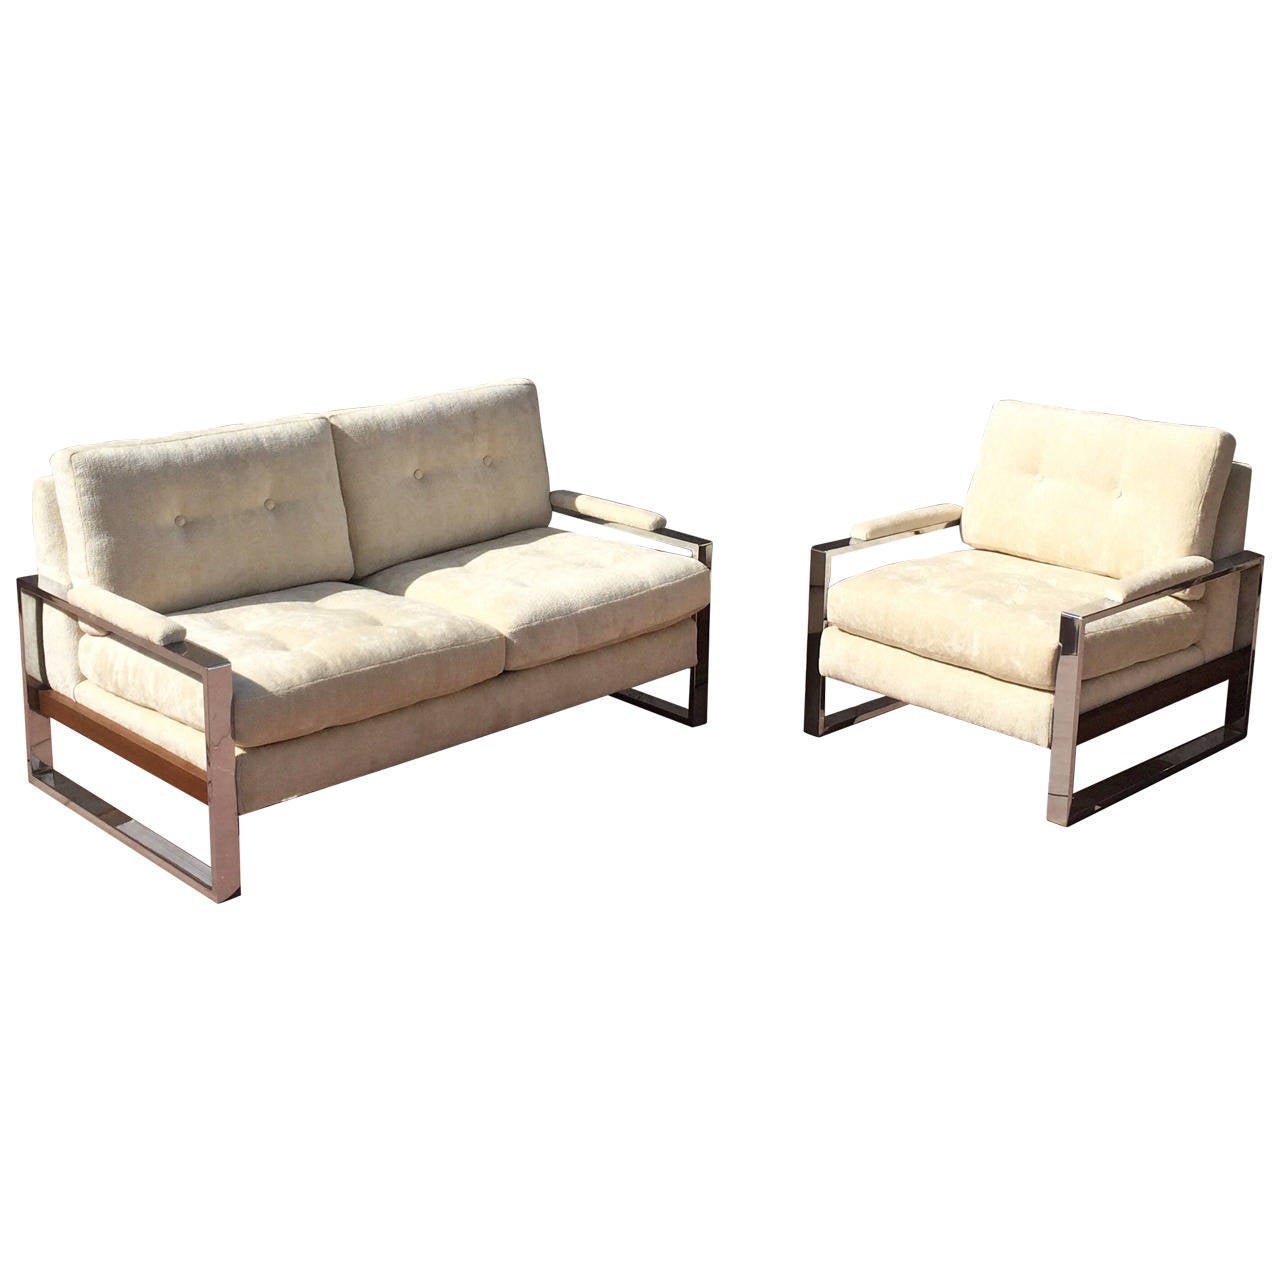 Loveseat and matching lounge chair by milo baughman at 1stdibs for Matching lounge furniture